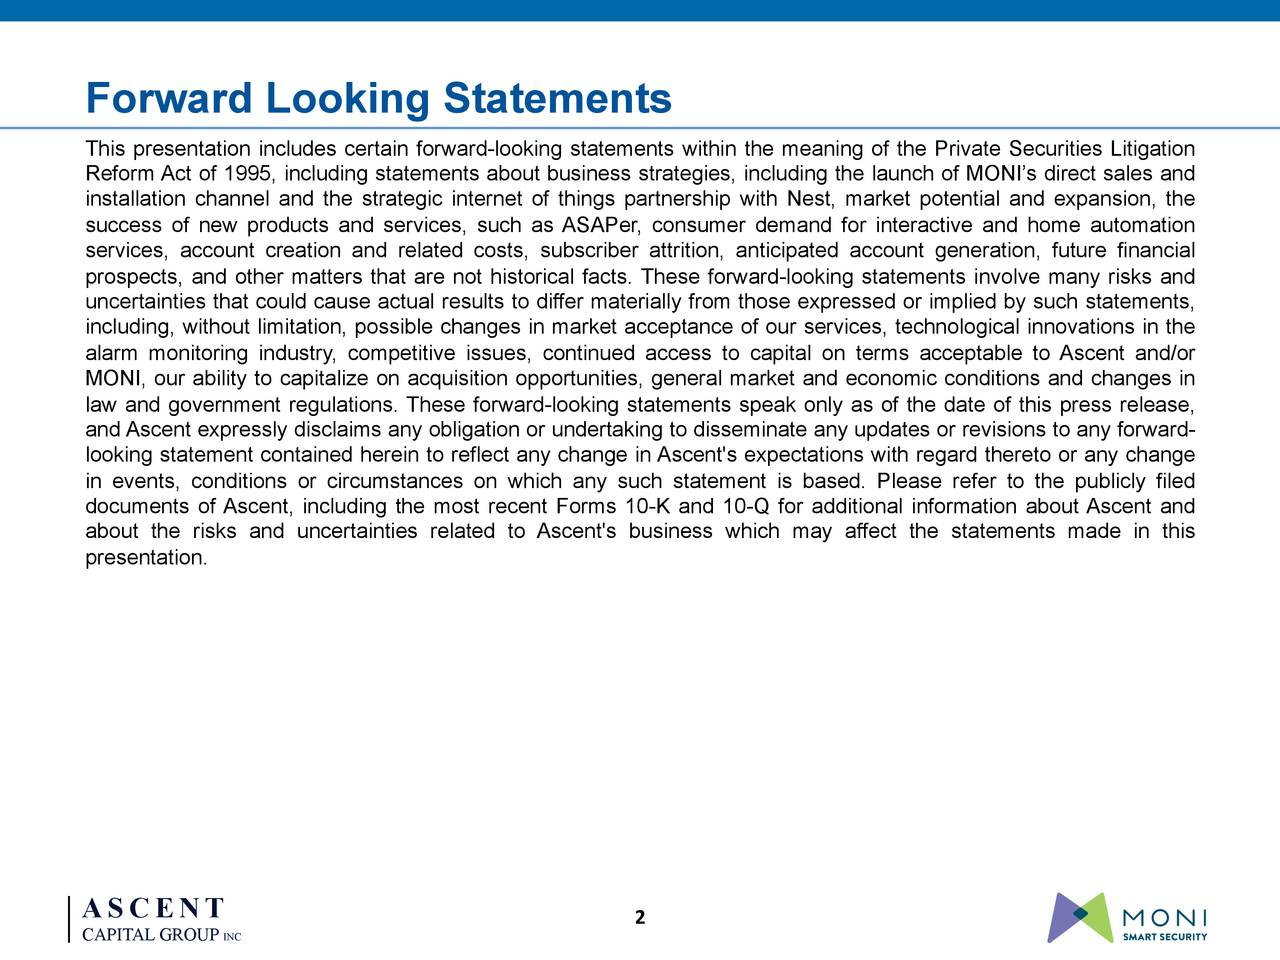 0-‐83-‐155 119-‐115-‐181 Forward Looking Statements 164-‐207-‐94 This presentation includes certain forward-looking statements within the meaning of the Private Securities Litigation 1-‐79-‐110 Reform Act of 1995, including statements about business strategies, including the launch of MONI's direct sales and installation channel and the strategic internet of things partnership with Nest, market potential and expansion, the success of new products and services, such as ASAPer, consumer demand for interactive and home automation services, account creation and related costs, subscriber attrition, anticipated account generation, future financial prospects, and other matters that are not historical facts. These forward-looking statements involve many risks and uncertainties that could cause actual results to differ materially from those expressed or implied by such statements, including, without limitation, possible changes in market acceptance of our services, technological innovations in the alarm monitoring industry, competitive issues, continued access to capital on terms acceptable to Ascent and/or MONI, our ability to capitalize on acquisition opportunities, general market and economic conditions and changes in law and government regulations. These forward-looking statements speak only as of the date of this press release, and Ascent expressly disclaims any obligation or undertaking to disseminate any updates or revisions to any forward- looking statement contained herein to reflect any change in Ascent's expectations with regard thereto or any change in events, conditions or circumstances on which any such statement is based. Please refer to the publicly filed documents of Ascent, including the most recent Forms 10-K and 10-Q for additional information about Ascent and about the risks and uncertainties related to Ascent's business which may affect the statements made in this presentation. ASCENT 2 CAPITAL GROUP INC